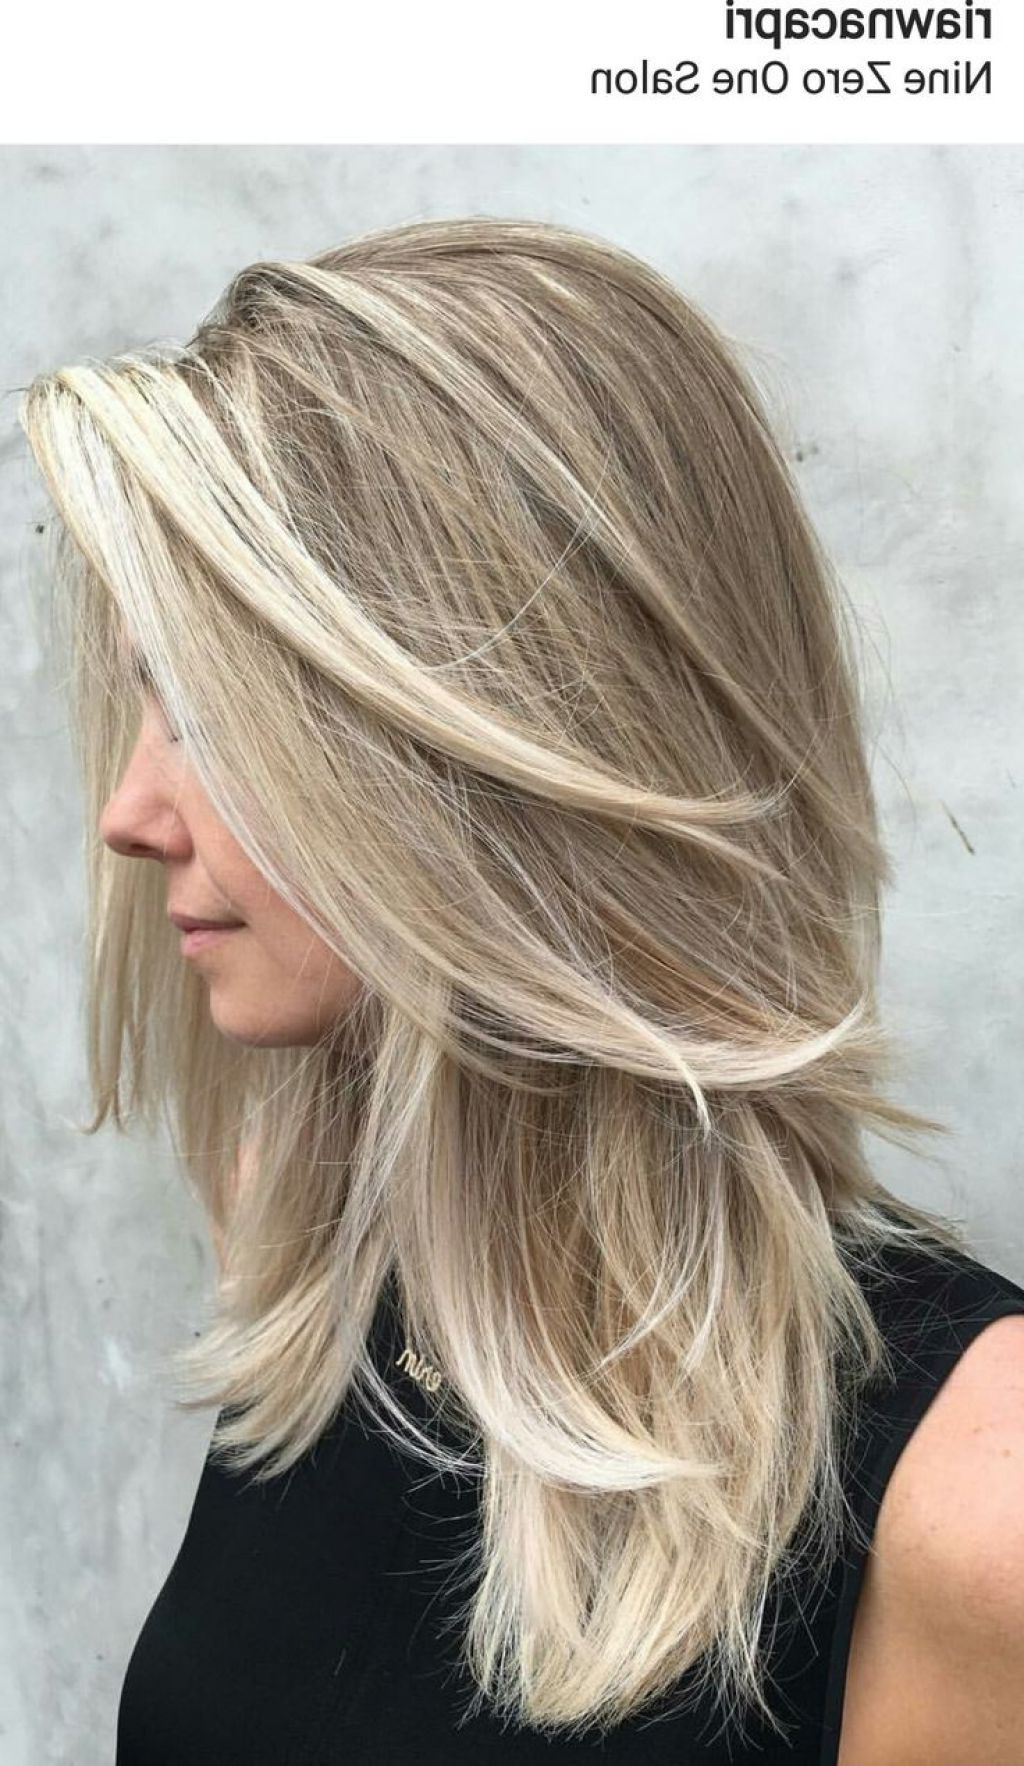 Favorite Swoopy Layers Hairstyles For Mid Length Hair Within Medium Hairstyle : Layered Hairstyles For Medium Length Hair With (View 4 of 20)